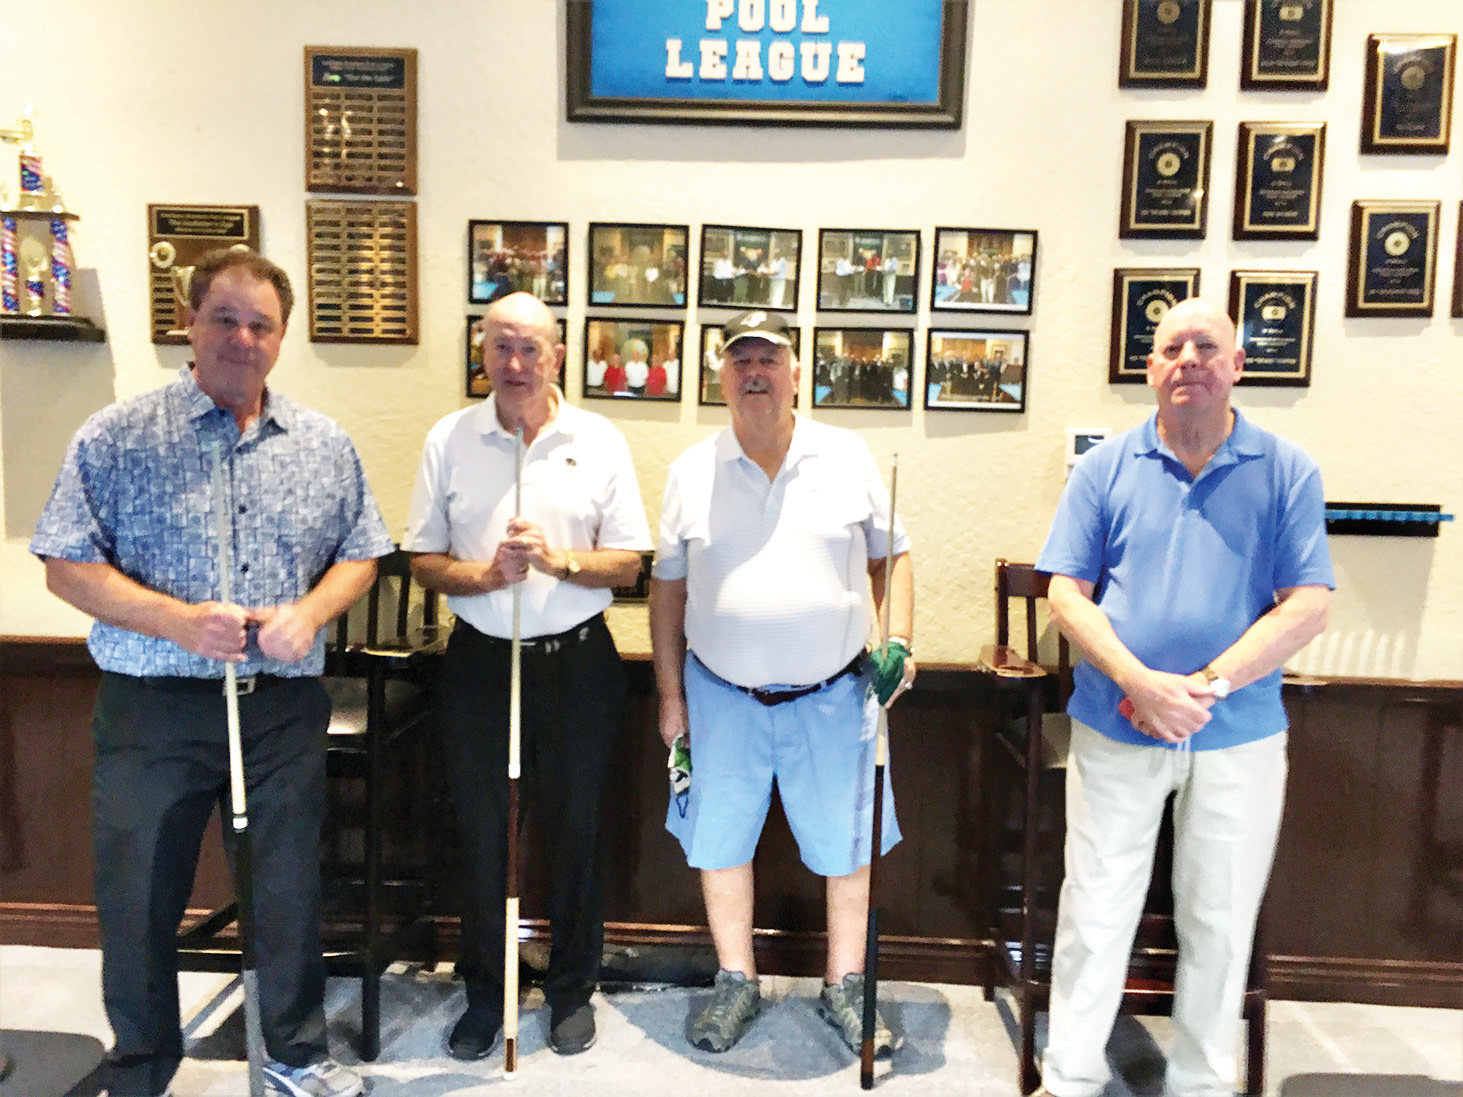 Left to right: George Kothe, Jim Boyes, Mark Bernier, and Don Lewis